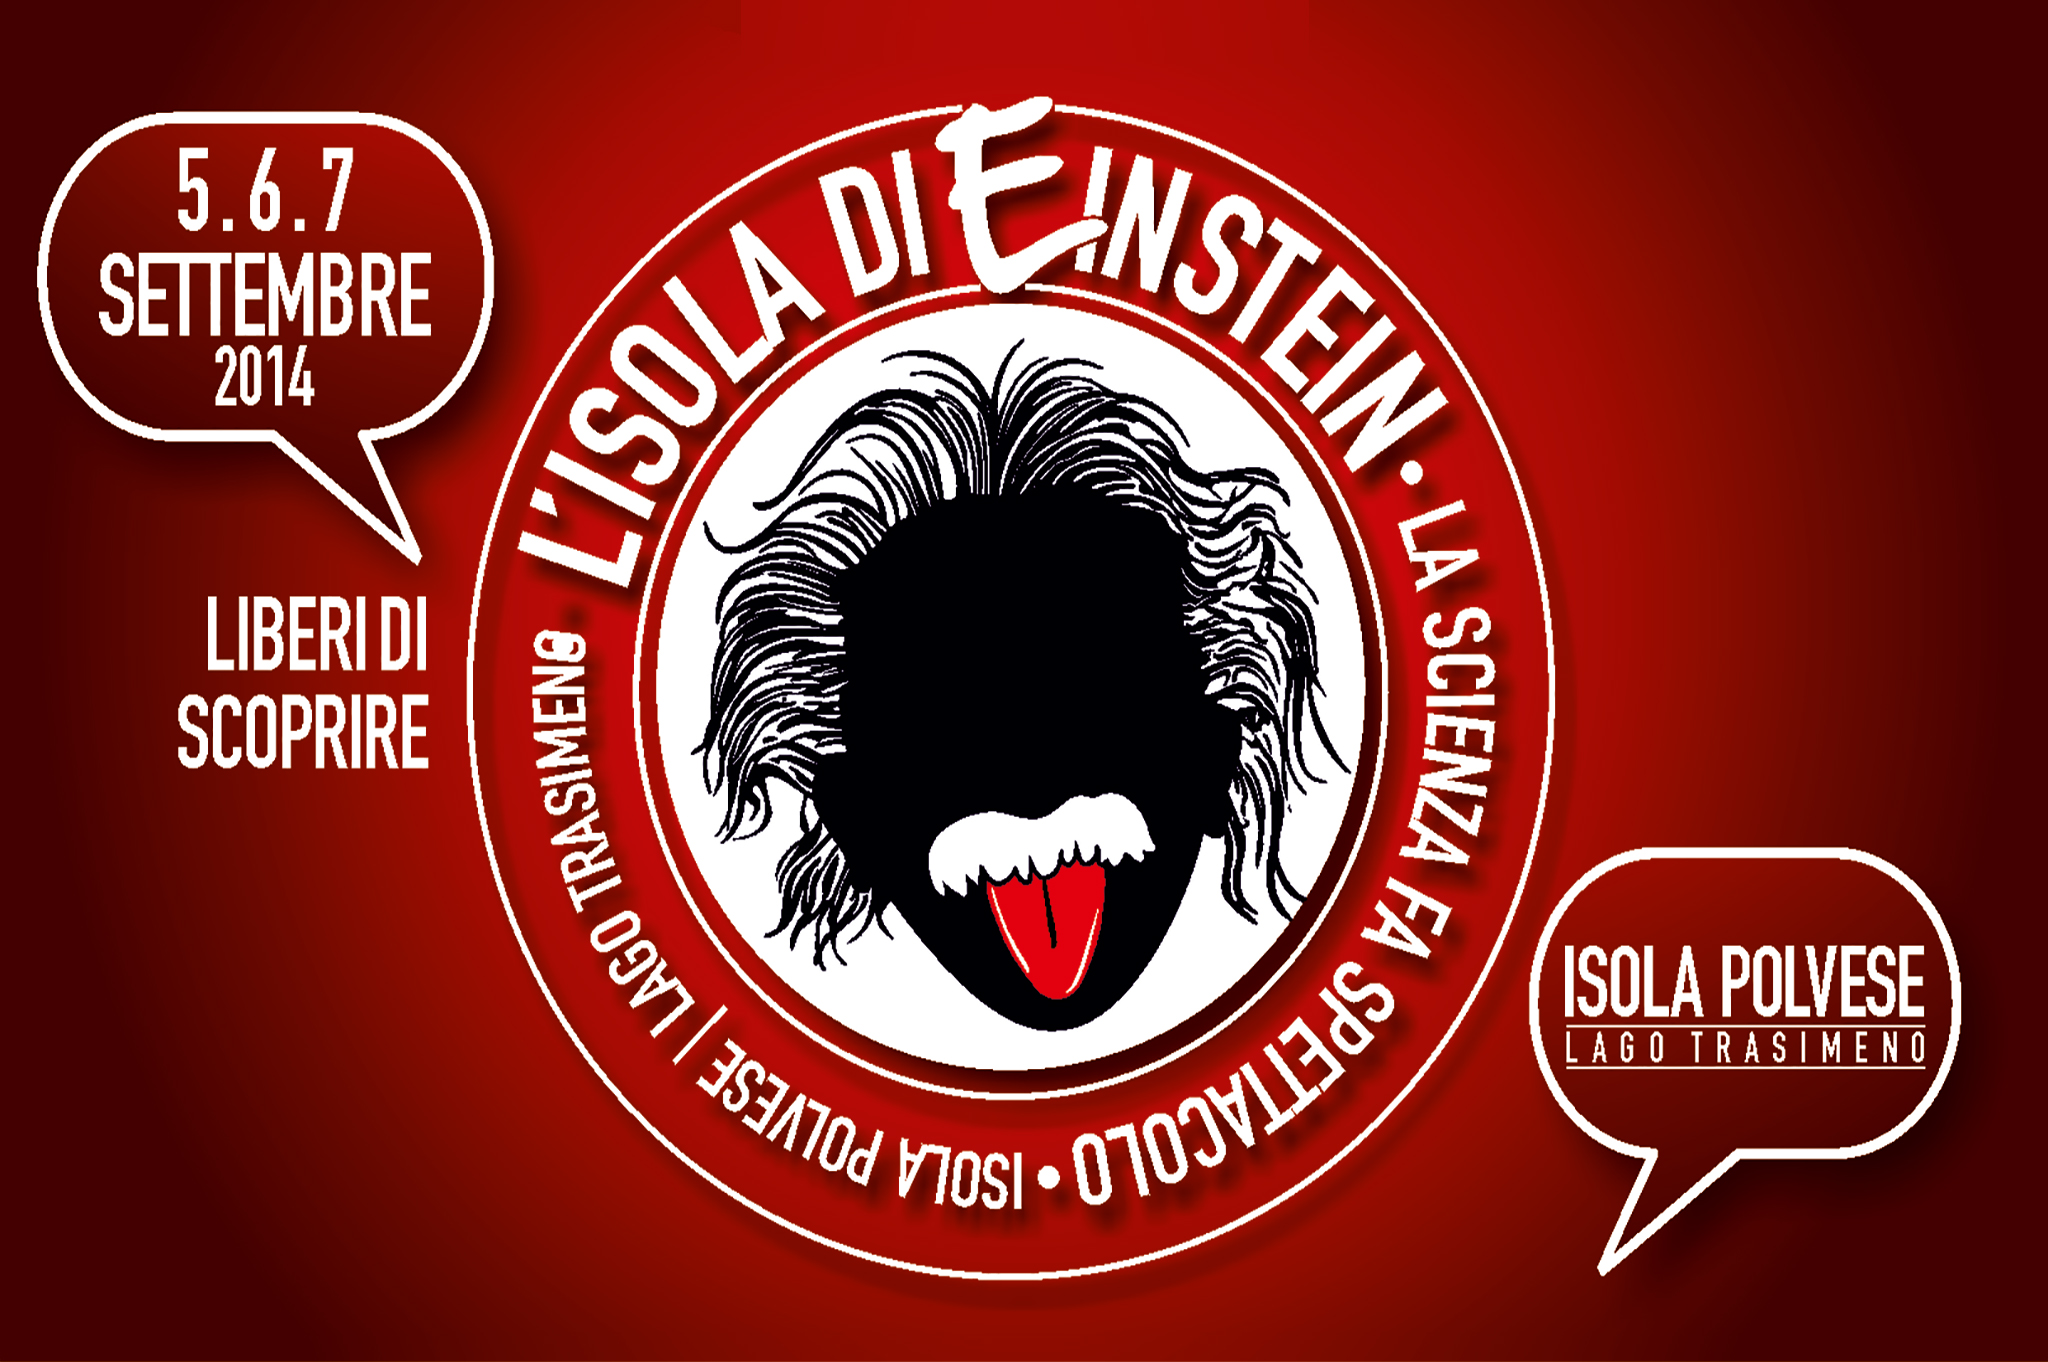 http://www.isoladieinstein.it/wp-content/uploads/2015/12/edizione2014.jpg